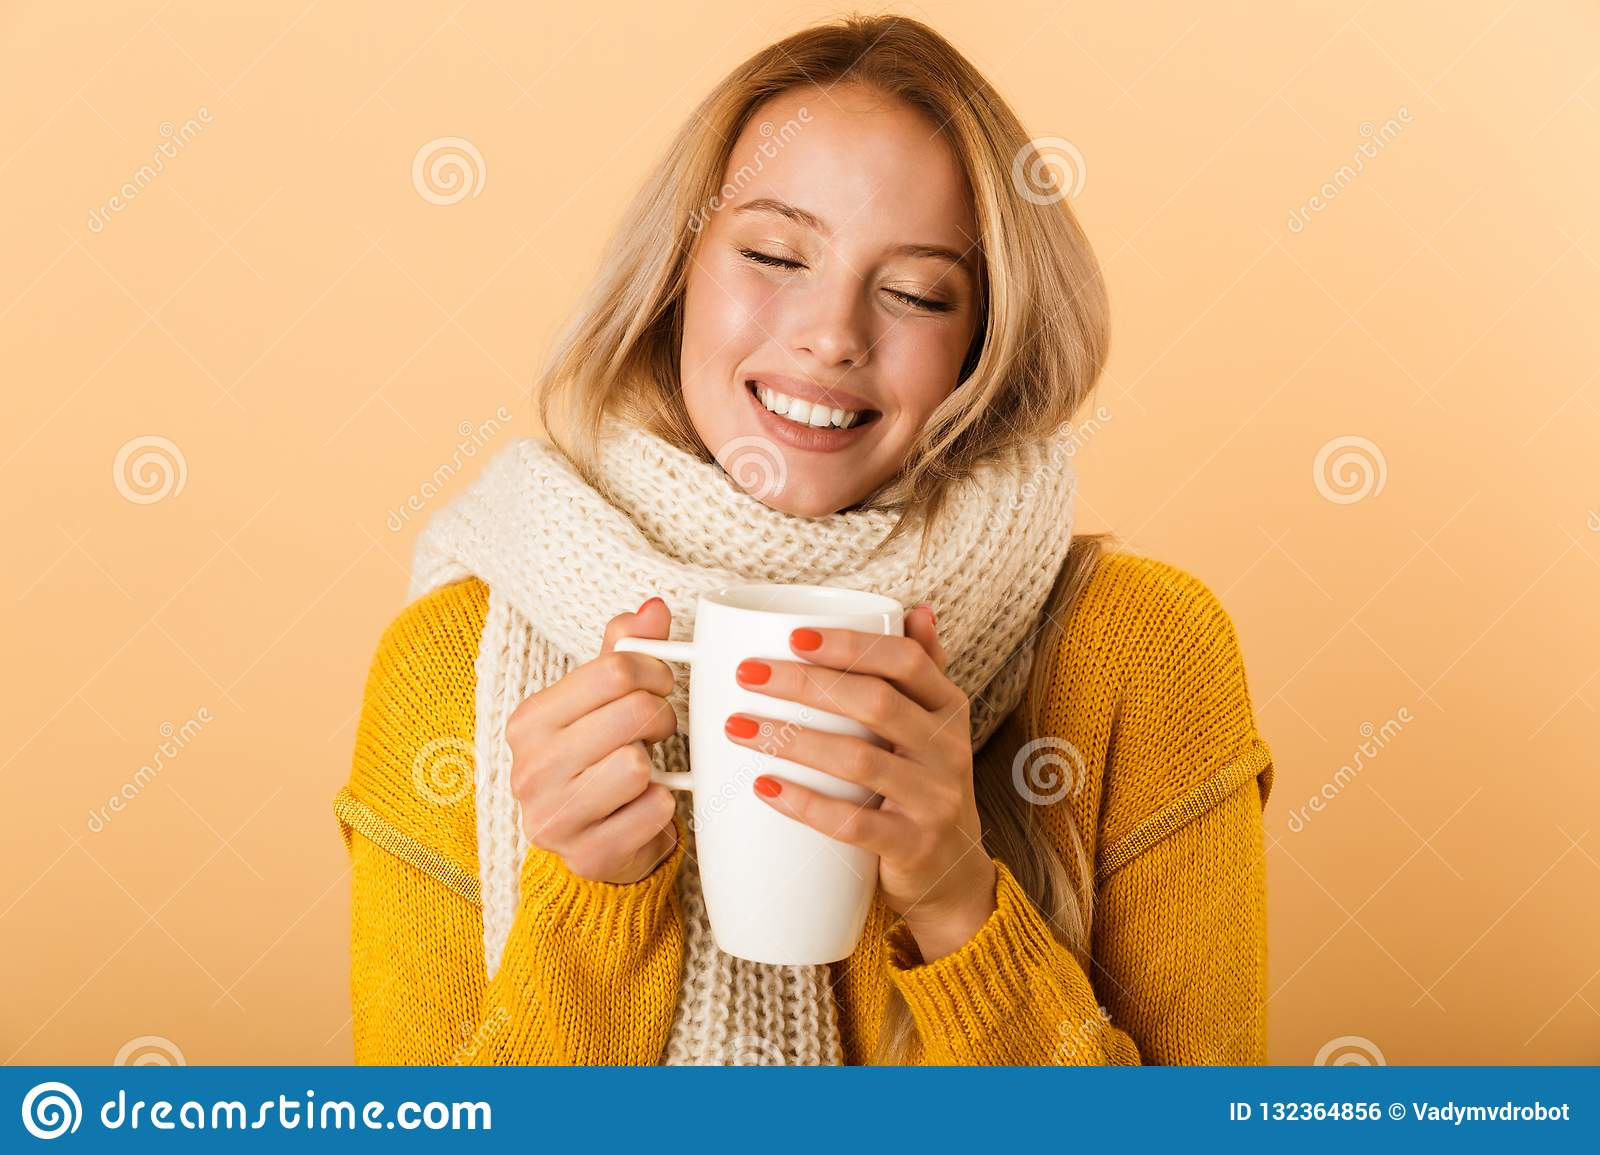 Woman holding cup of tea wearing scarf posing isolated over yellow wall background